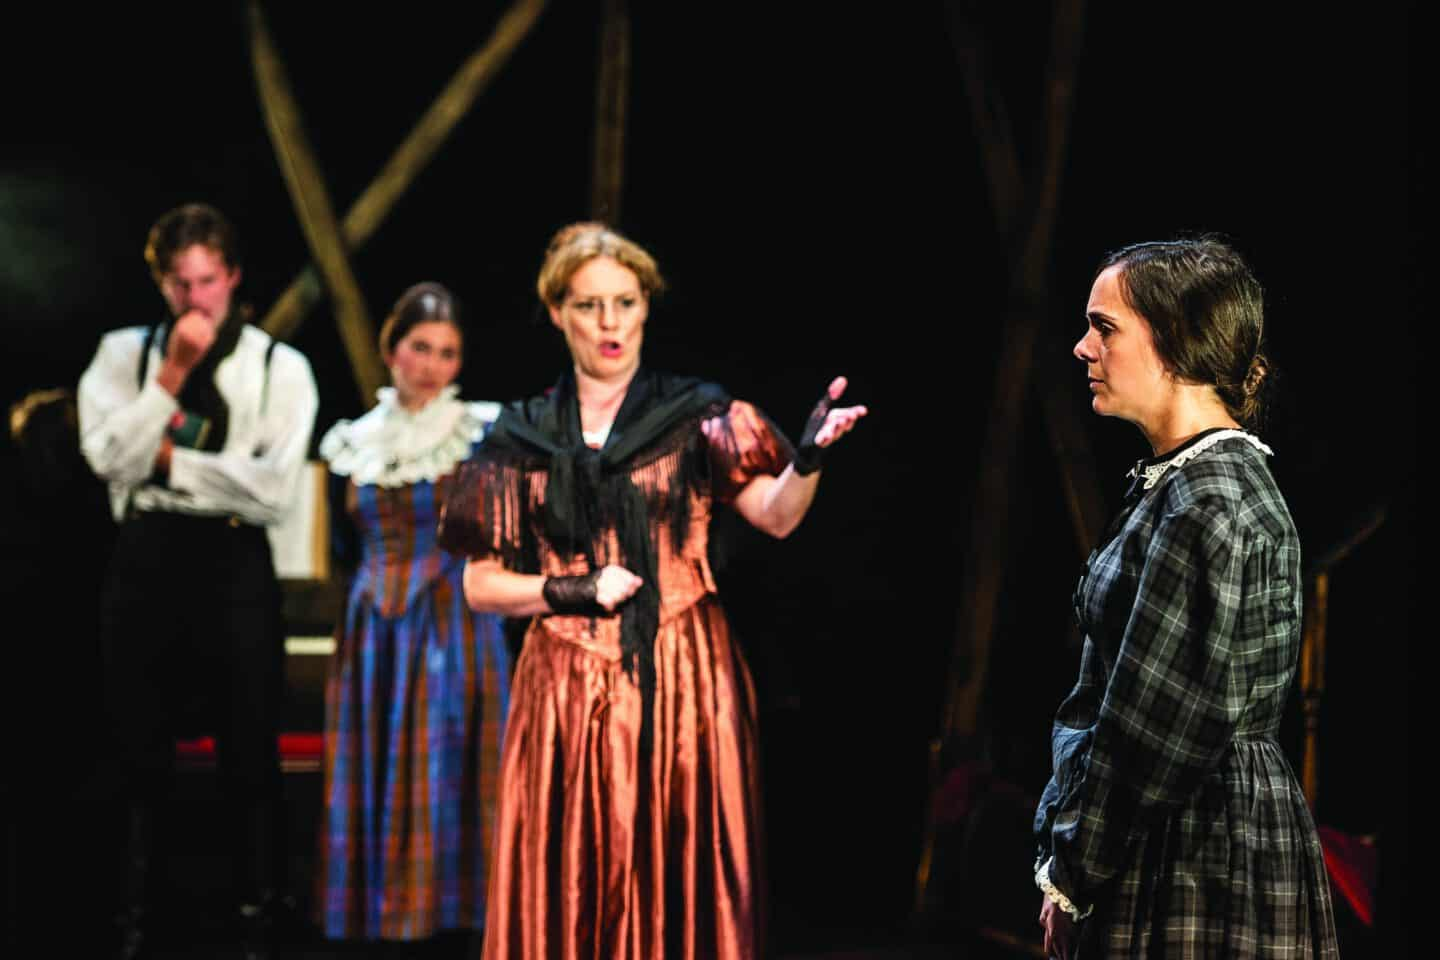 Jane Eyre on stage with another female character